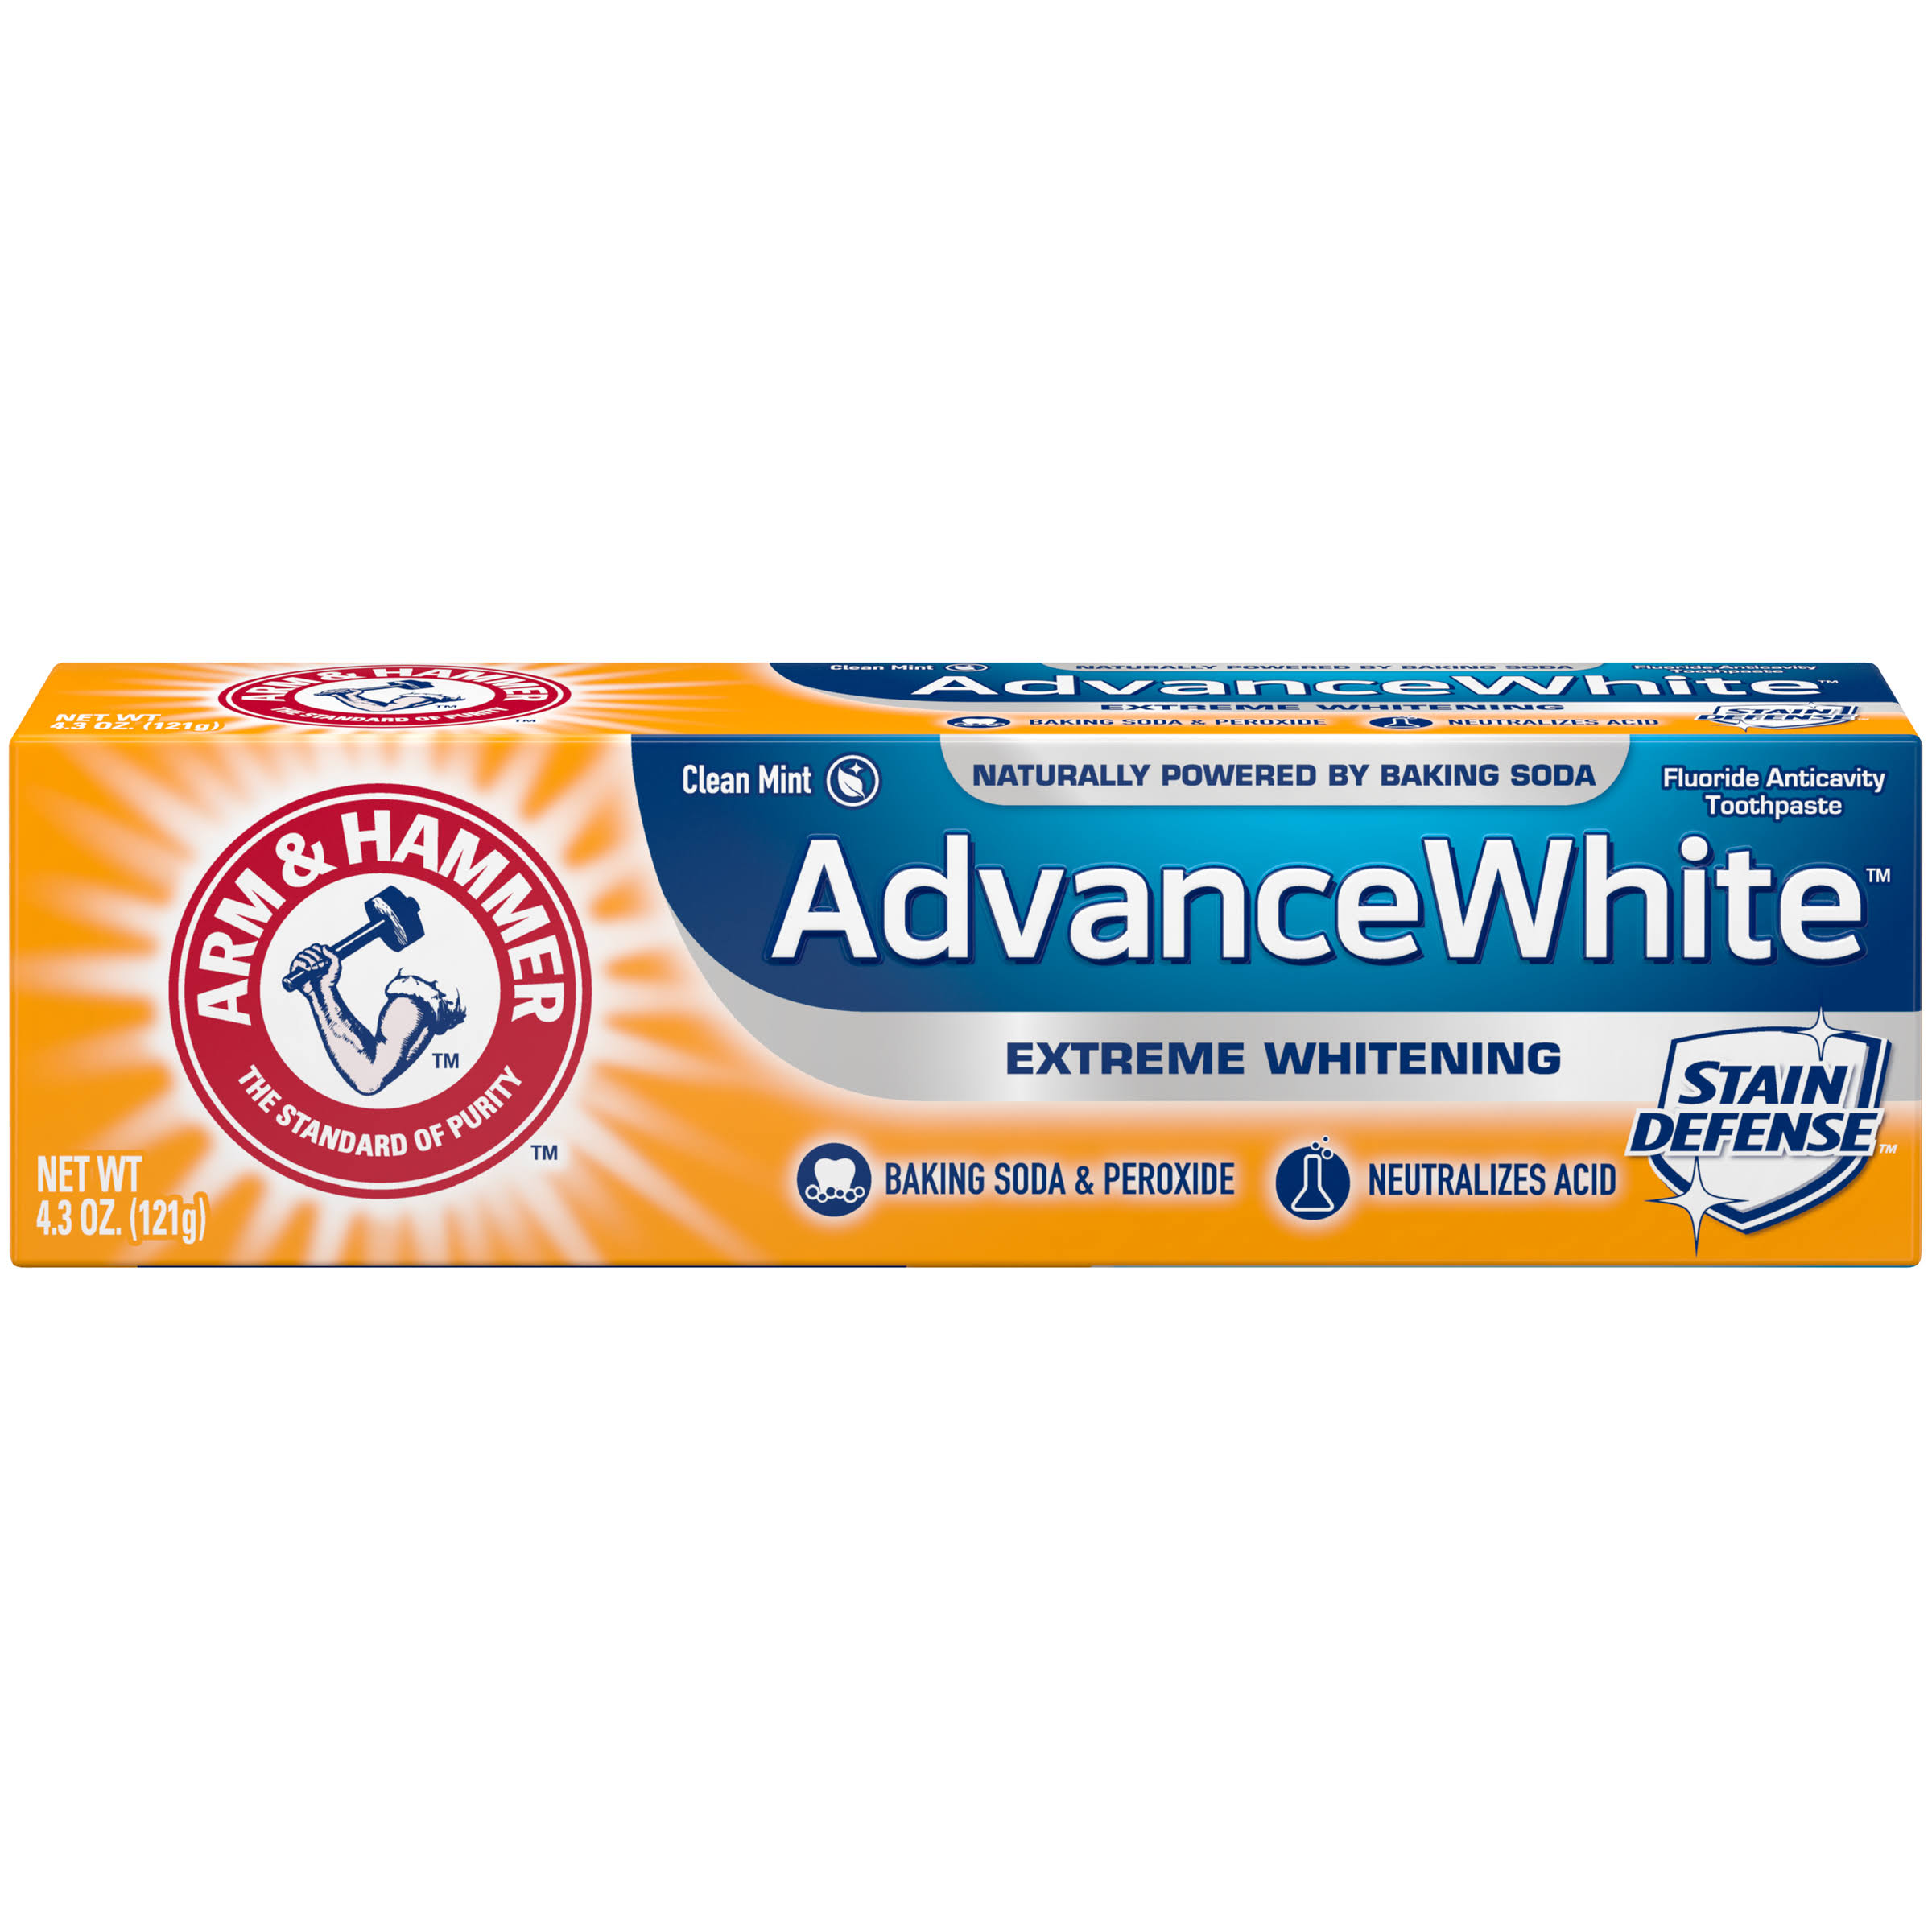 Arm & Hammer Advance White Baking Soda & Peroxide Toothpaste, Extreme Whitening - 4.3 oz tube